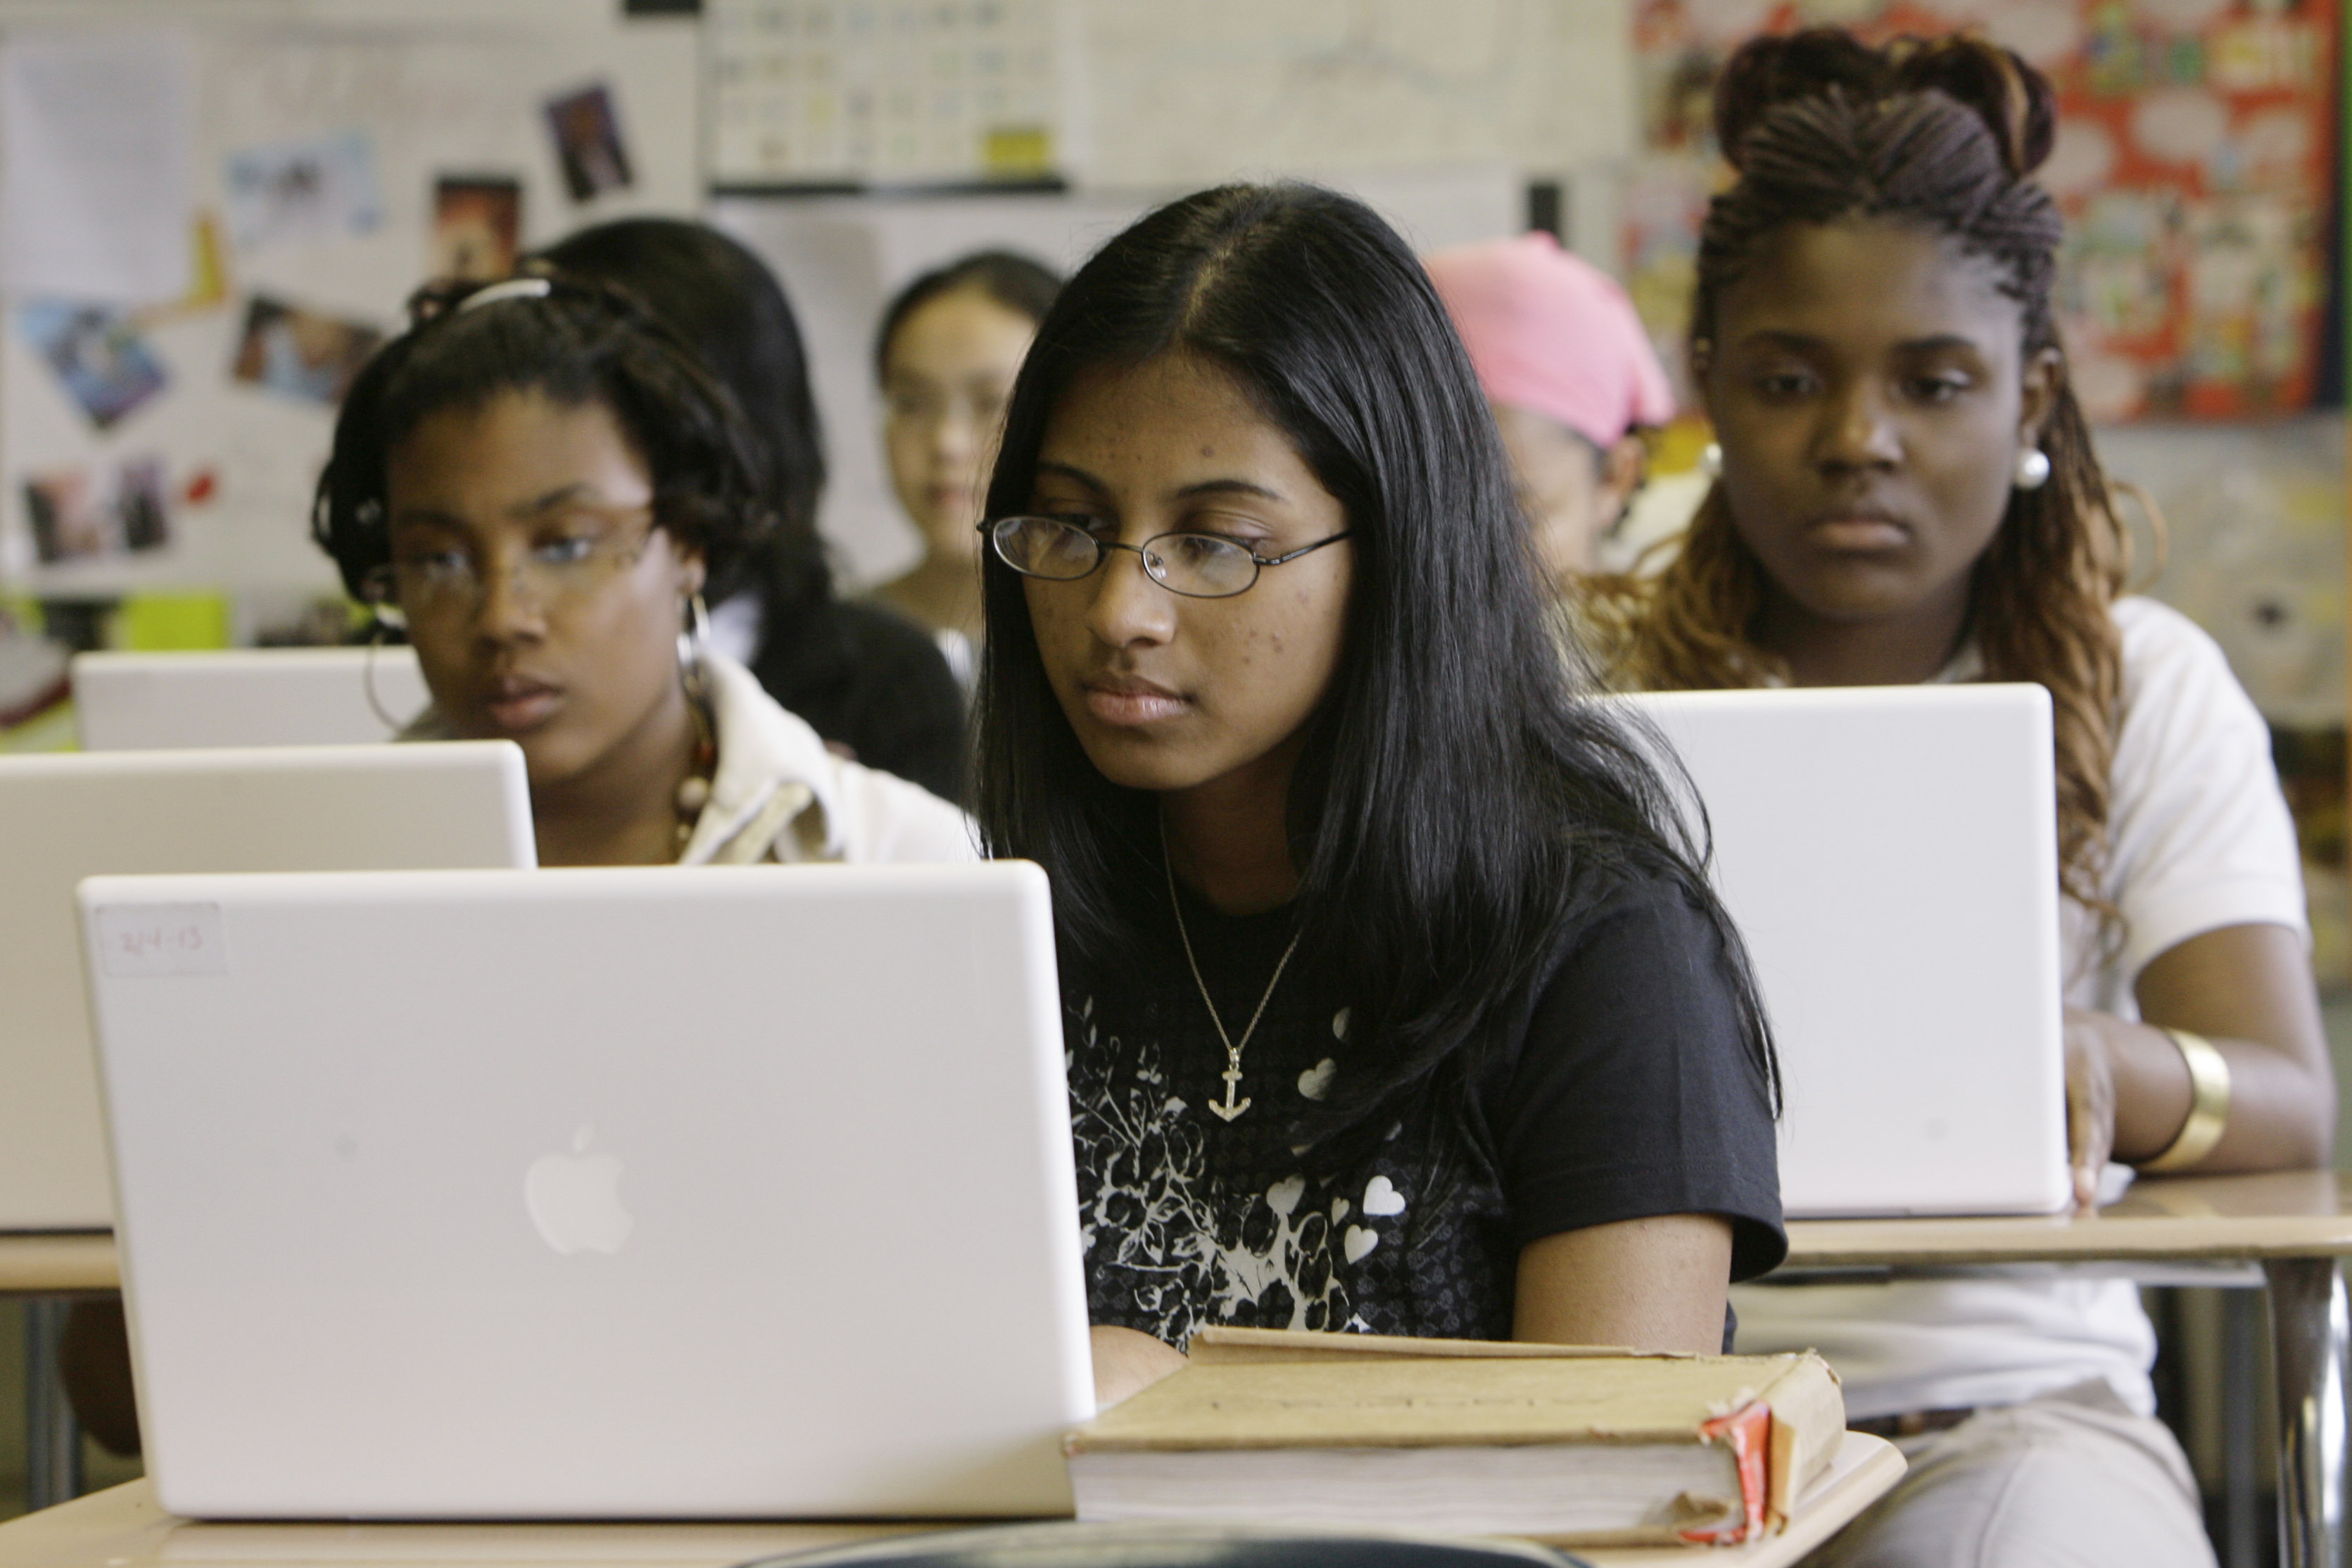 FILE - Ninth-graders work on laptop computers during a class at the Philadelphia High School for Girls in Philadelphia.